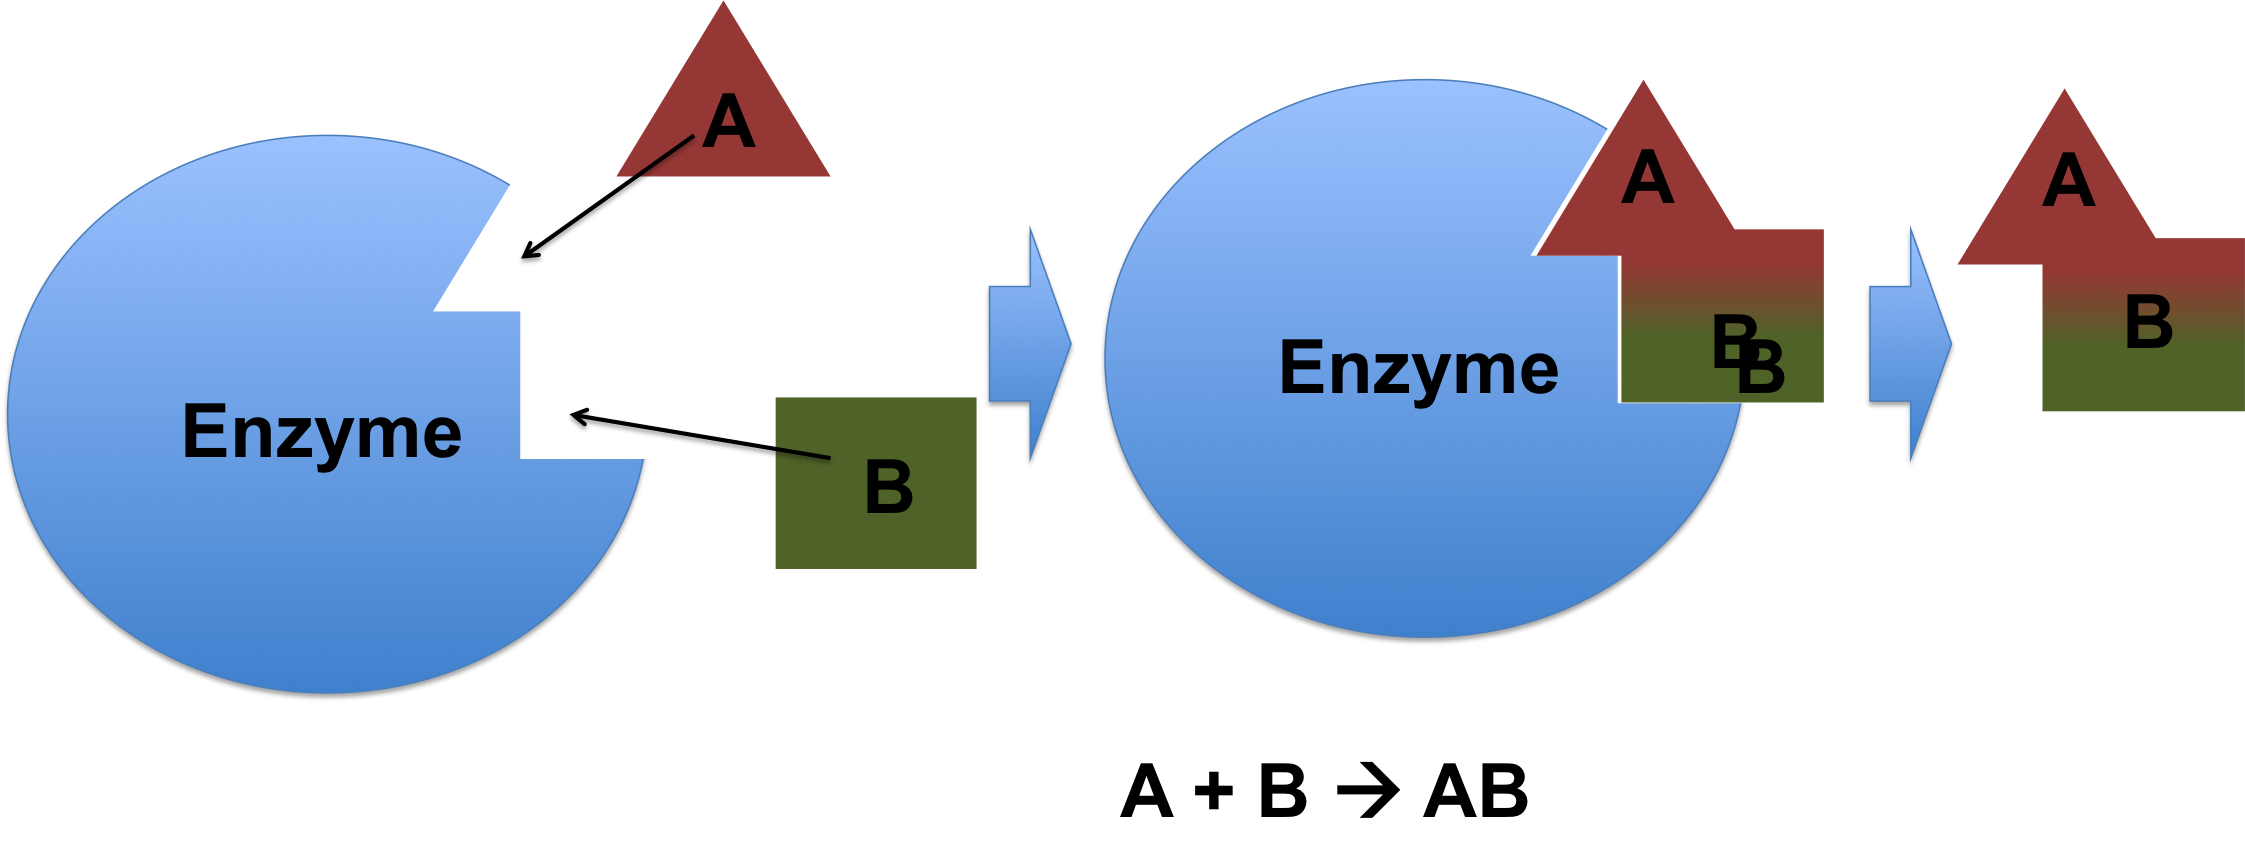 Teas test questions on the action of enzymes downhousesoftware an enzyme processing a substrate a b ab pooptronica Images